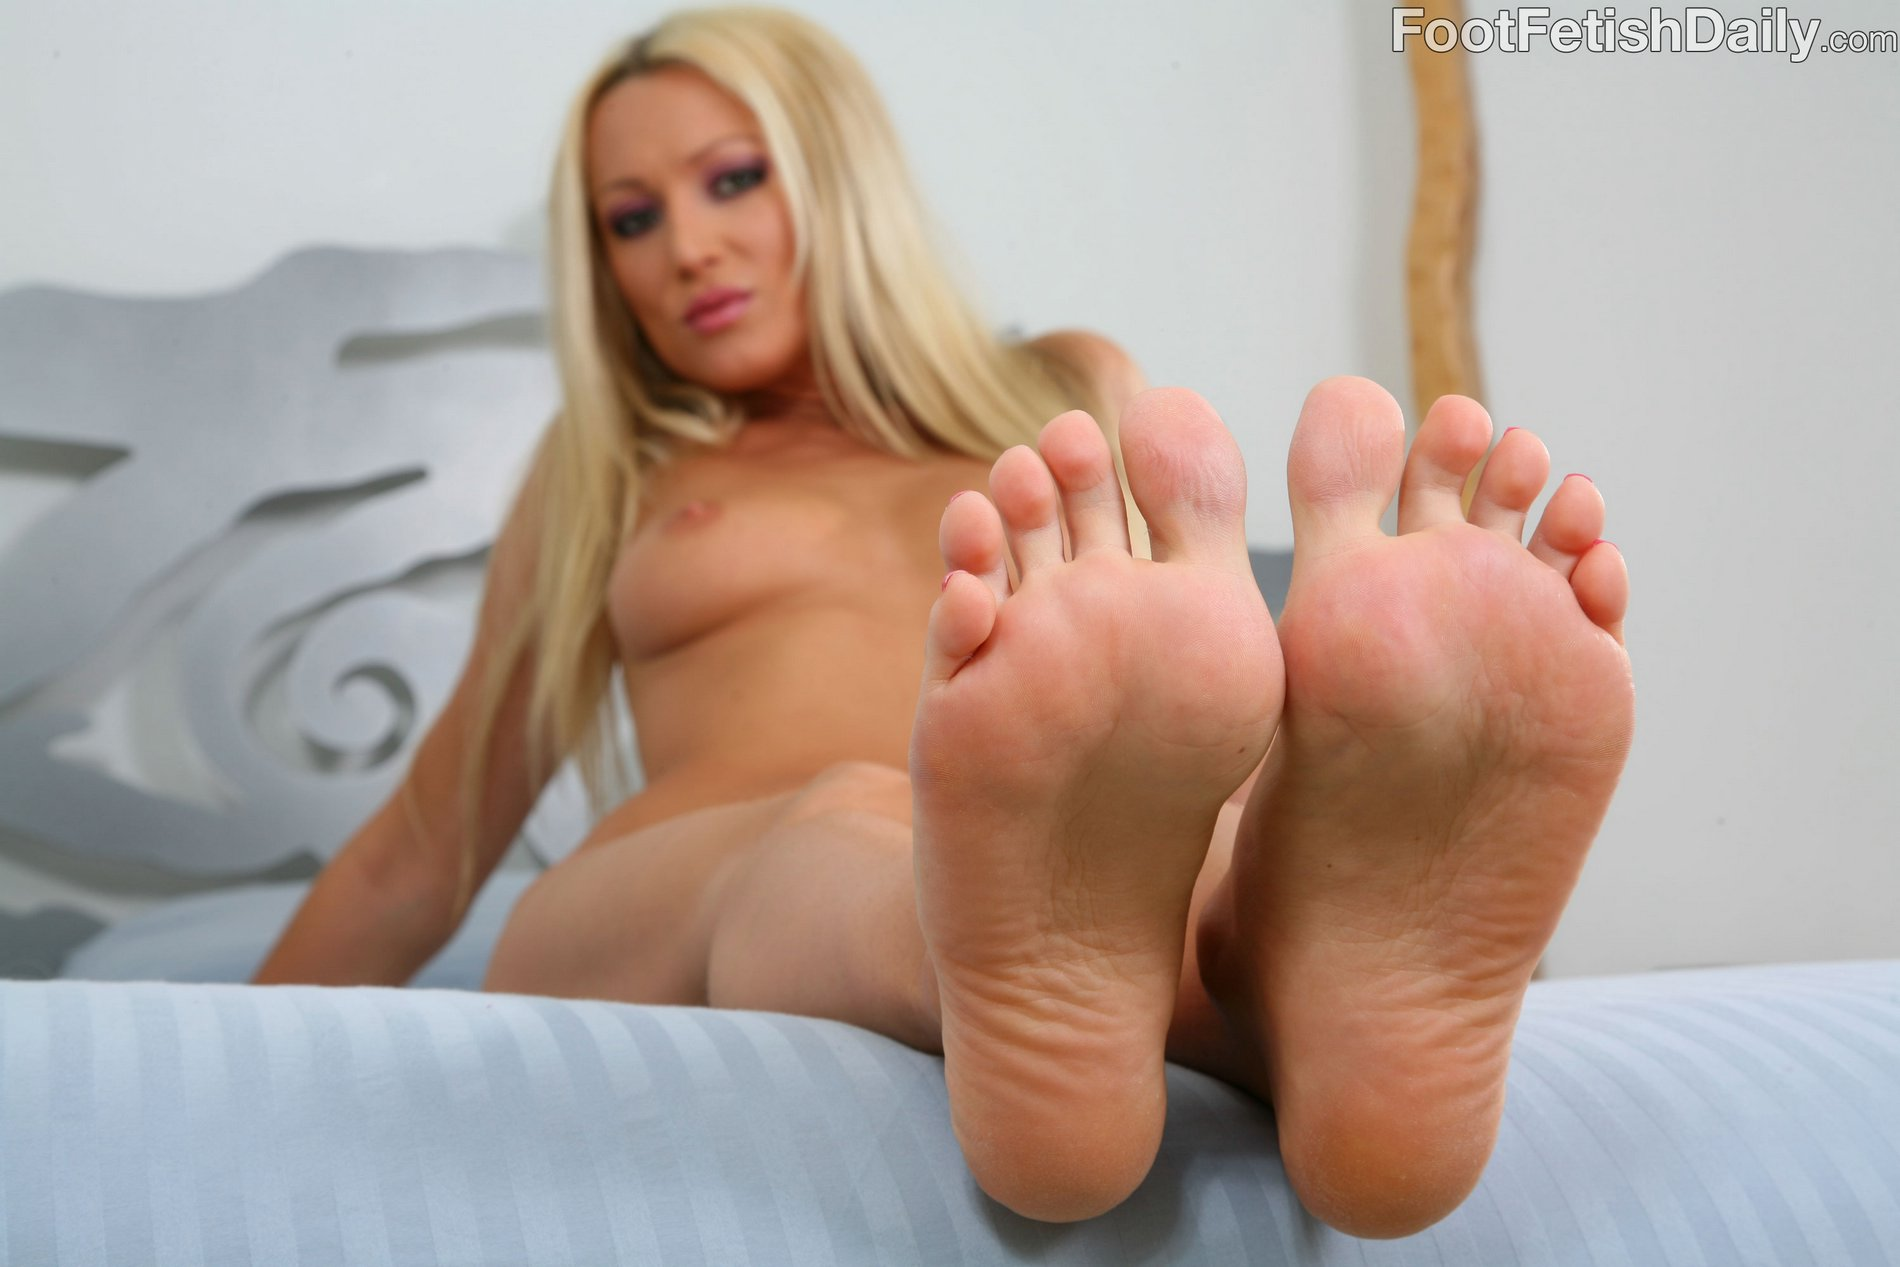 Feet porn categories